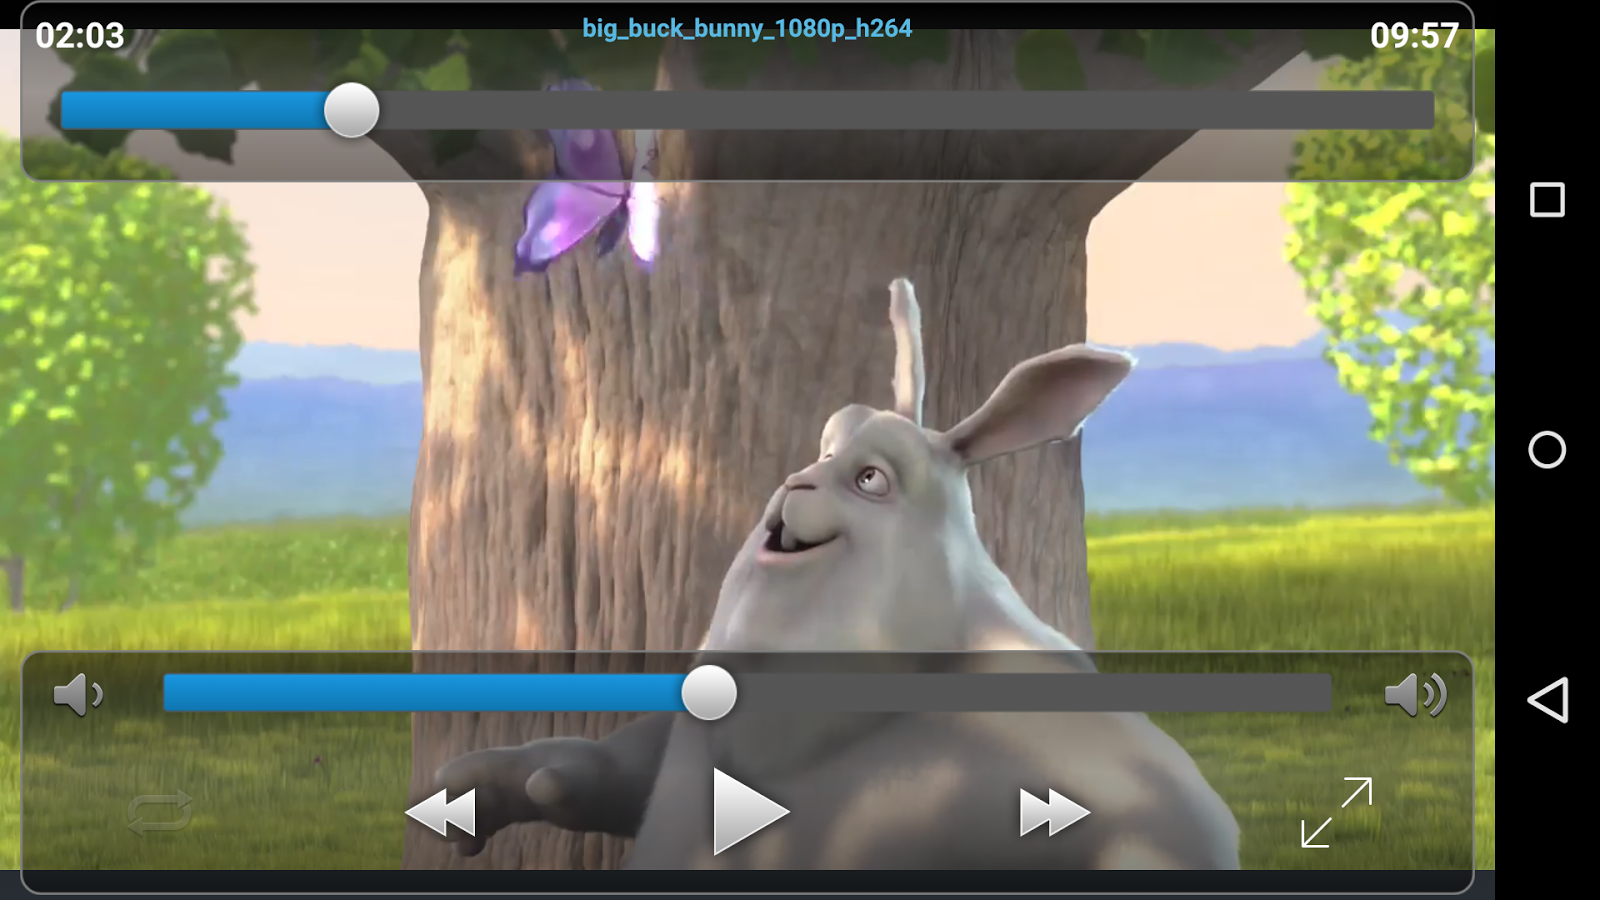 VLC Streamer Screenshot 1